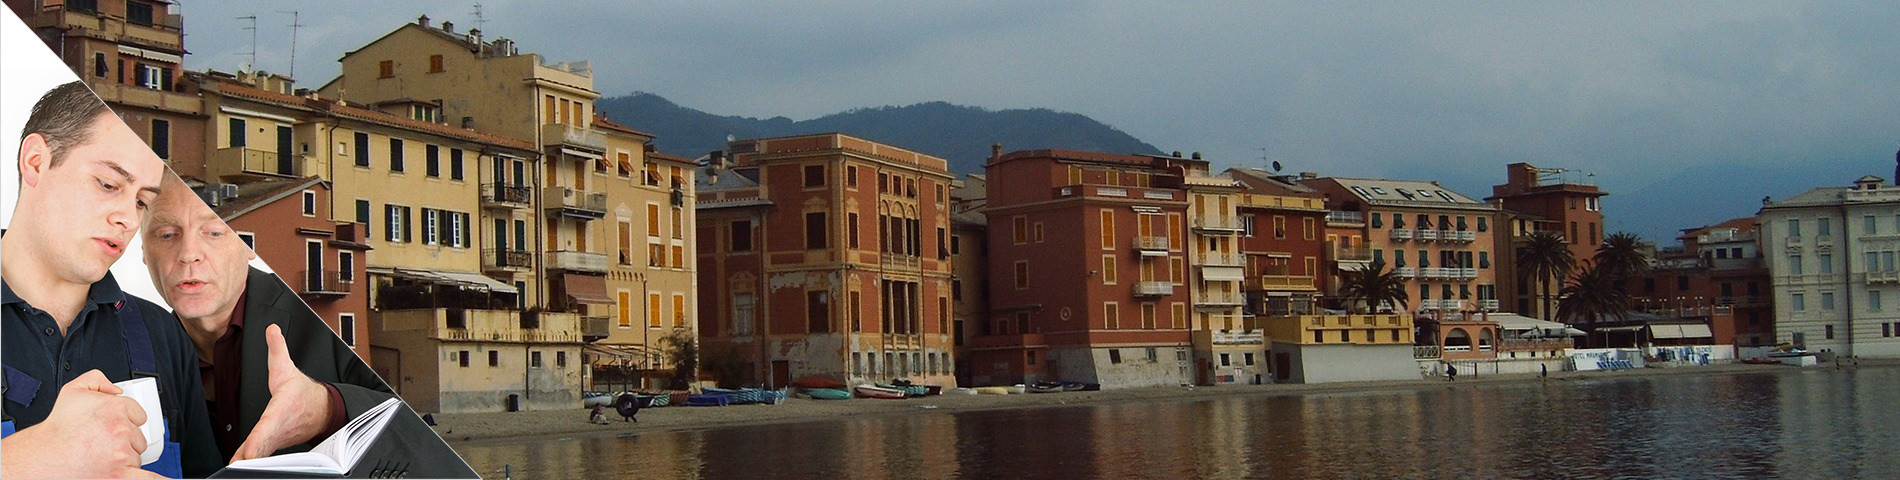 Sestri Levante - One-to-One